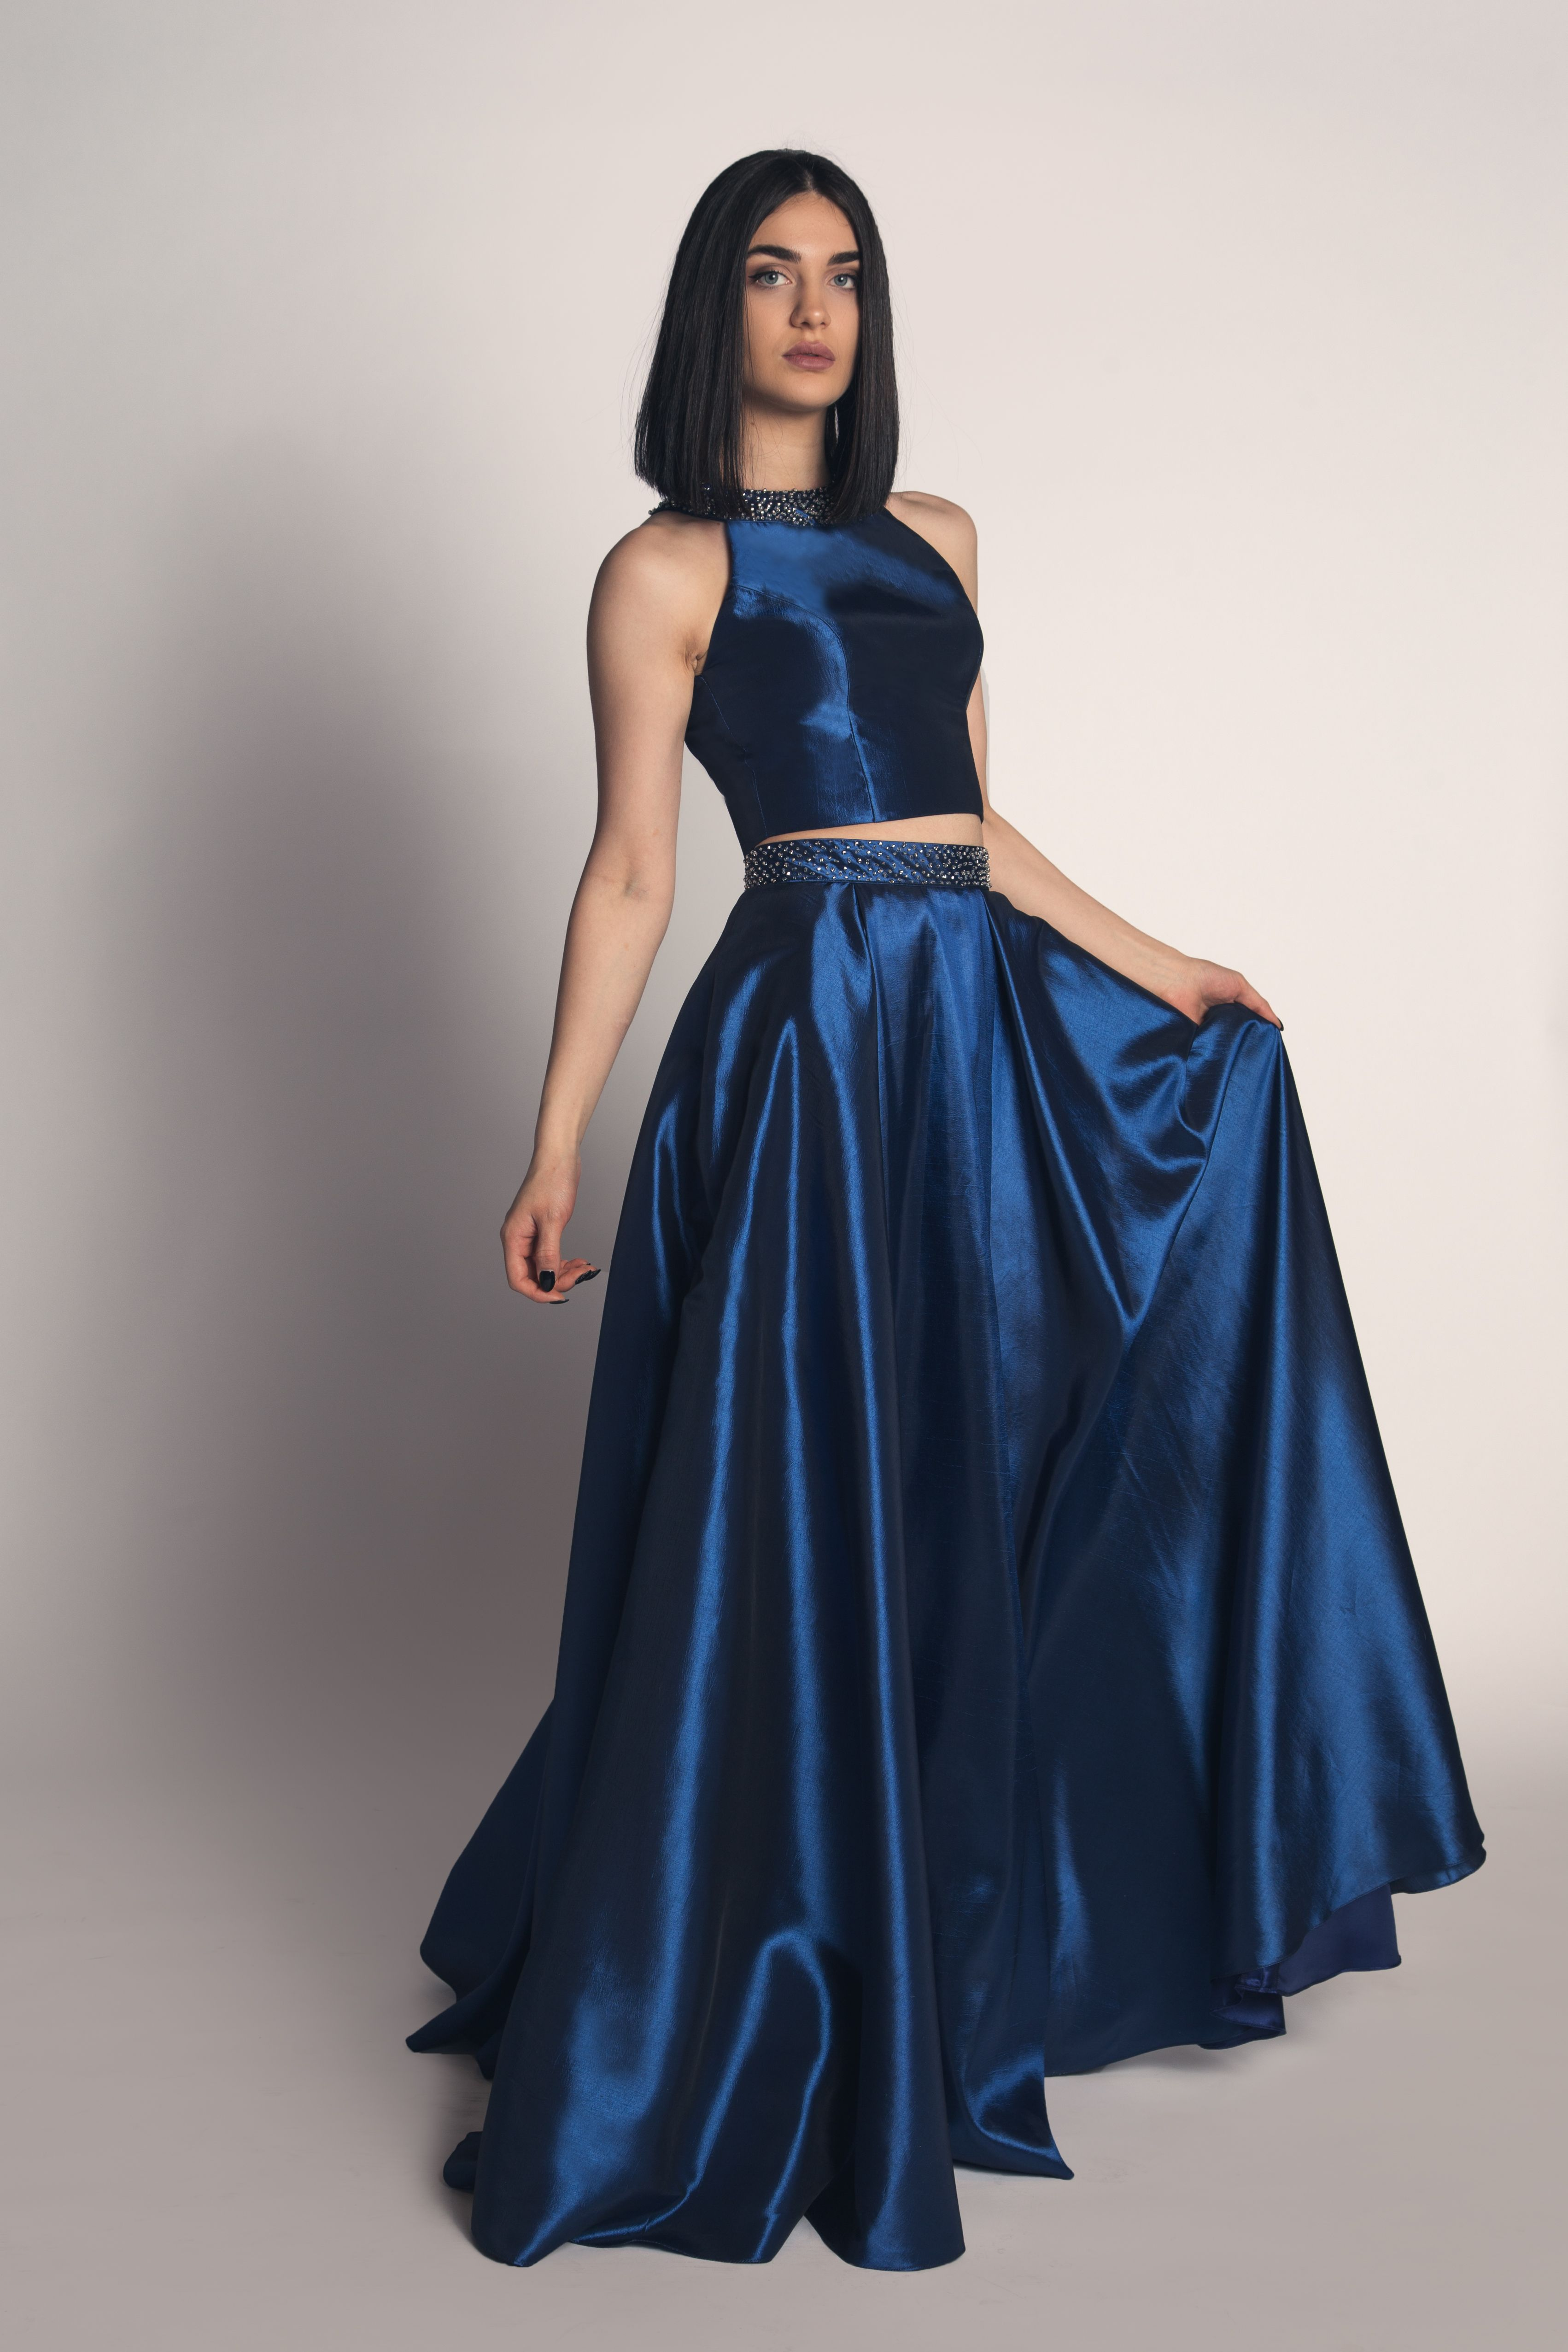 Blue Two Piece Prom Dress Halter Top Piece Prom Dress Formal Dresses Dresses To Wear To A Wedding [ 5106 x 3404 Pixel ]